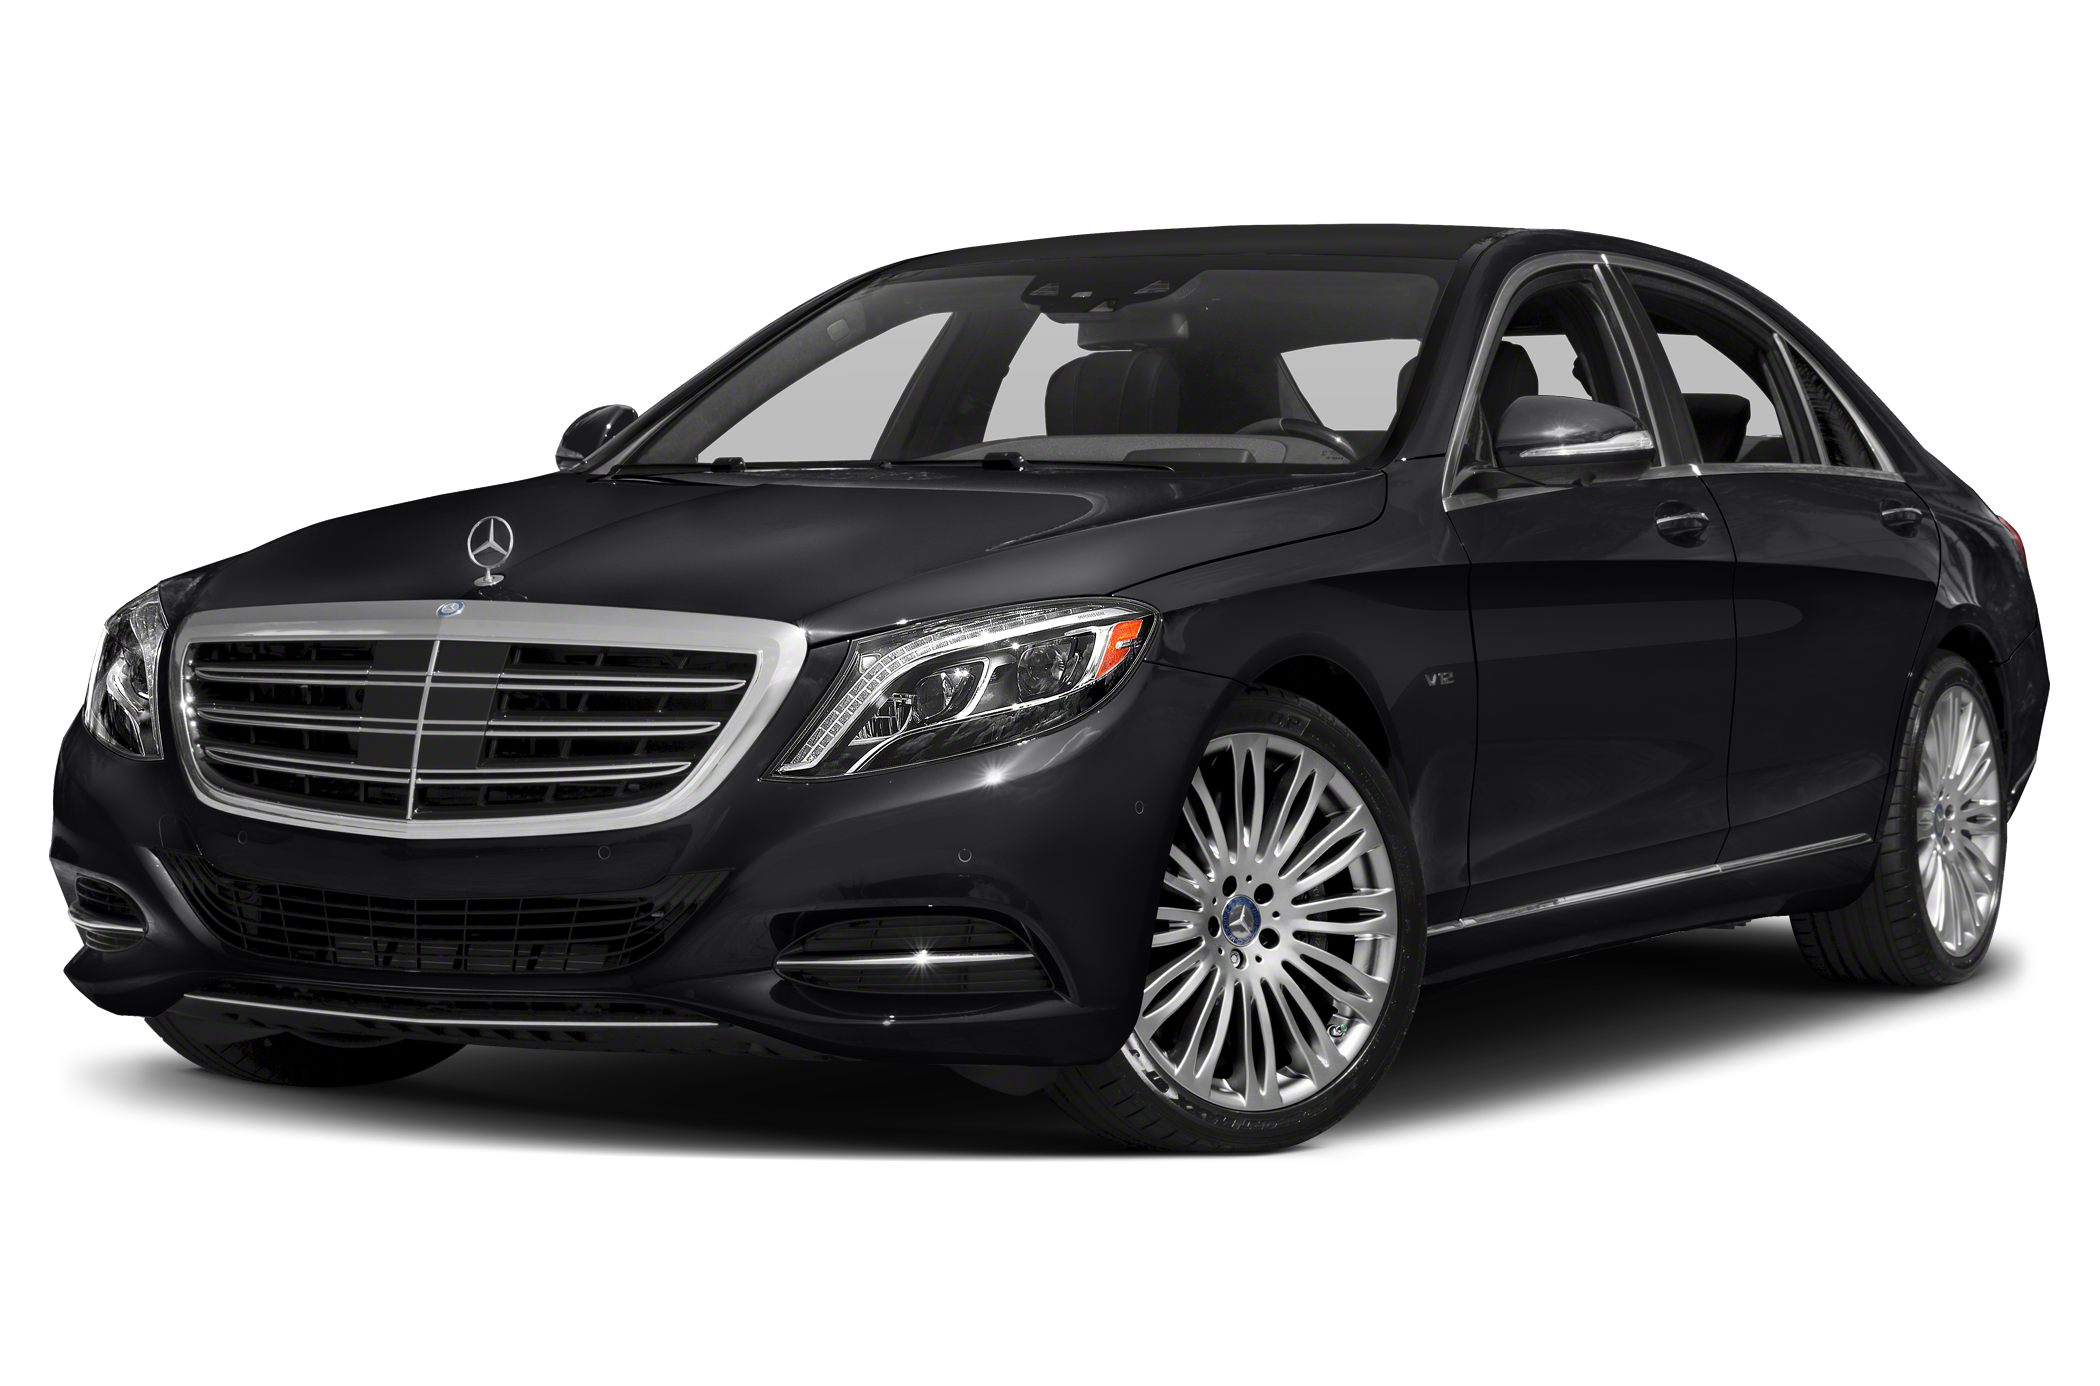 2015 Mercedes-Benz S-Class S600 Sedan for sale in New York for $175,135 with 7 miles.